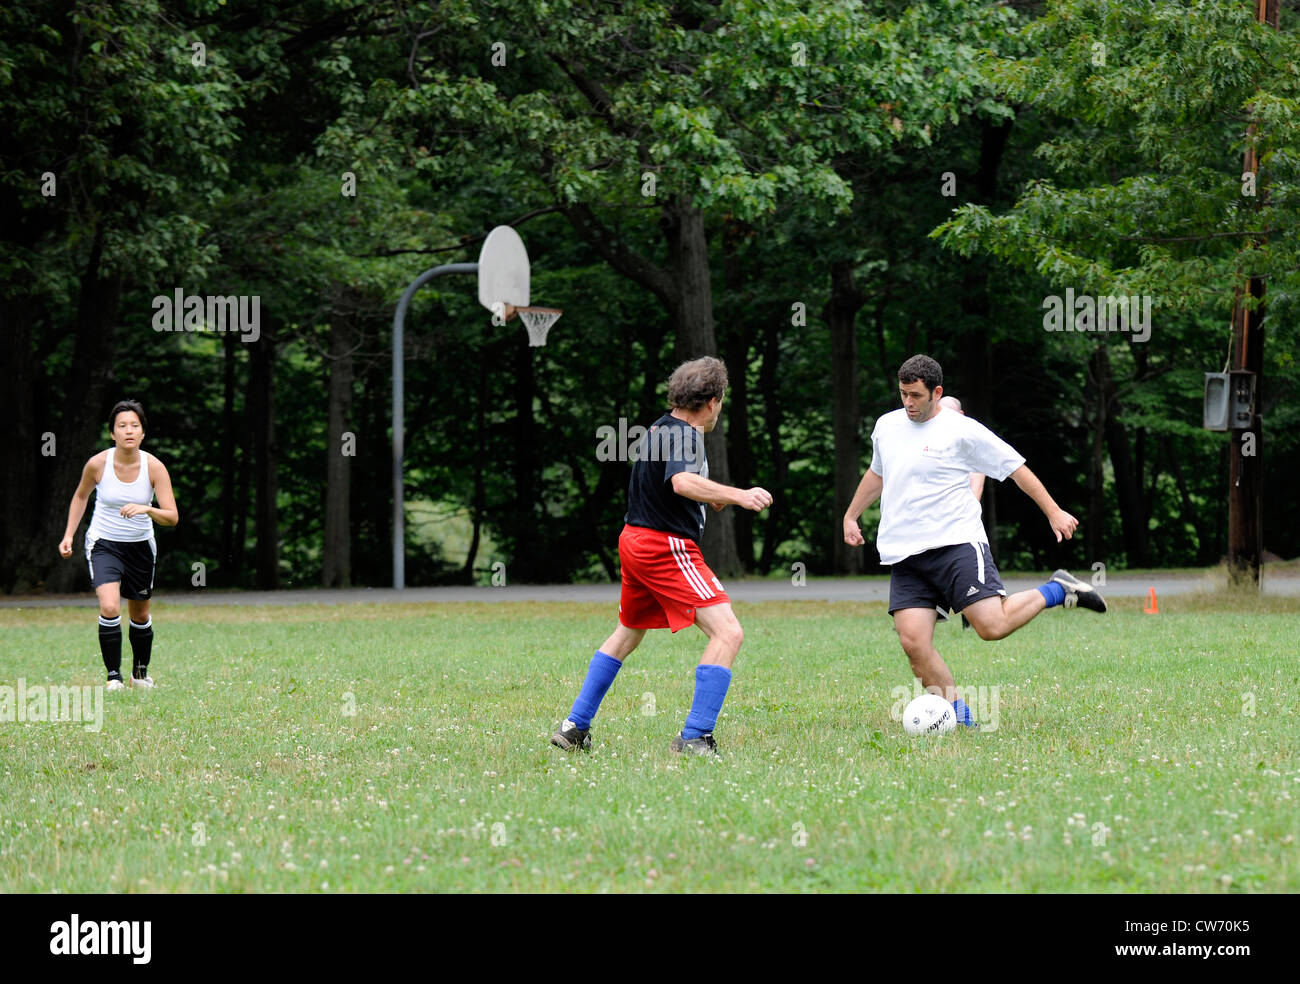 Pickup soccer game in East Rock Park on a Sunday. - Stock Image